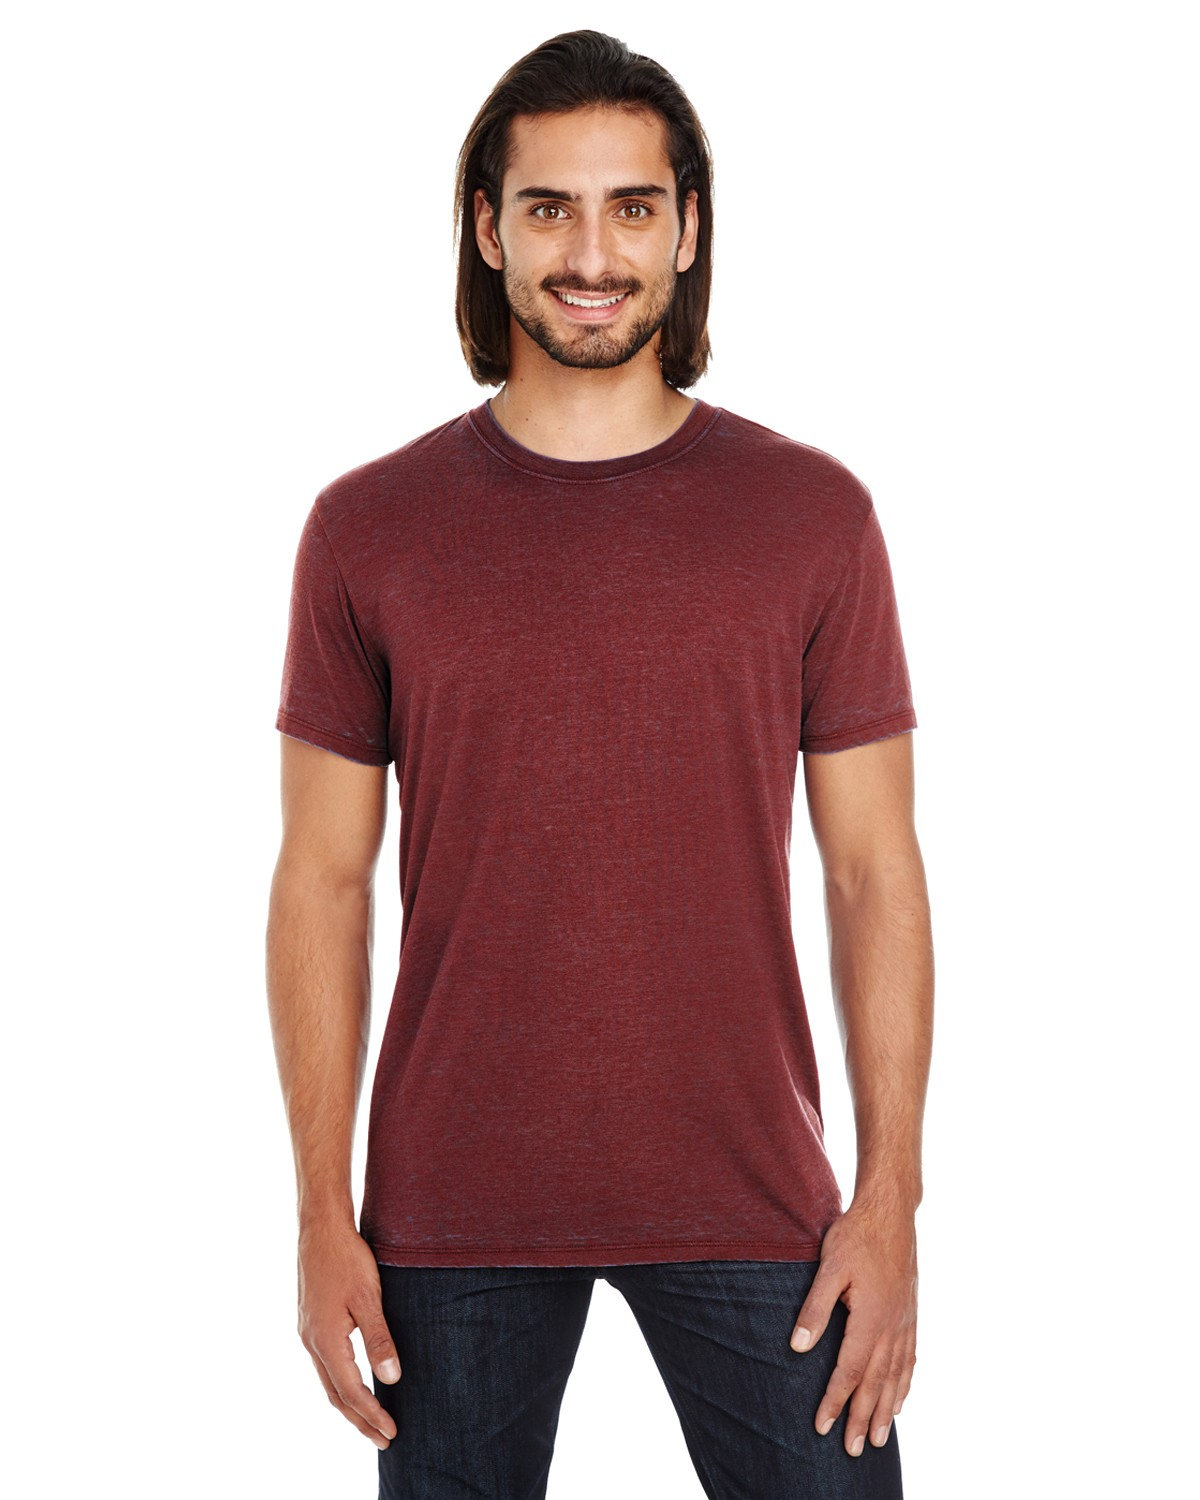 115A Threadfast Apparel BLACK CHERRY